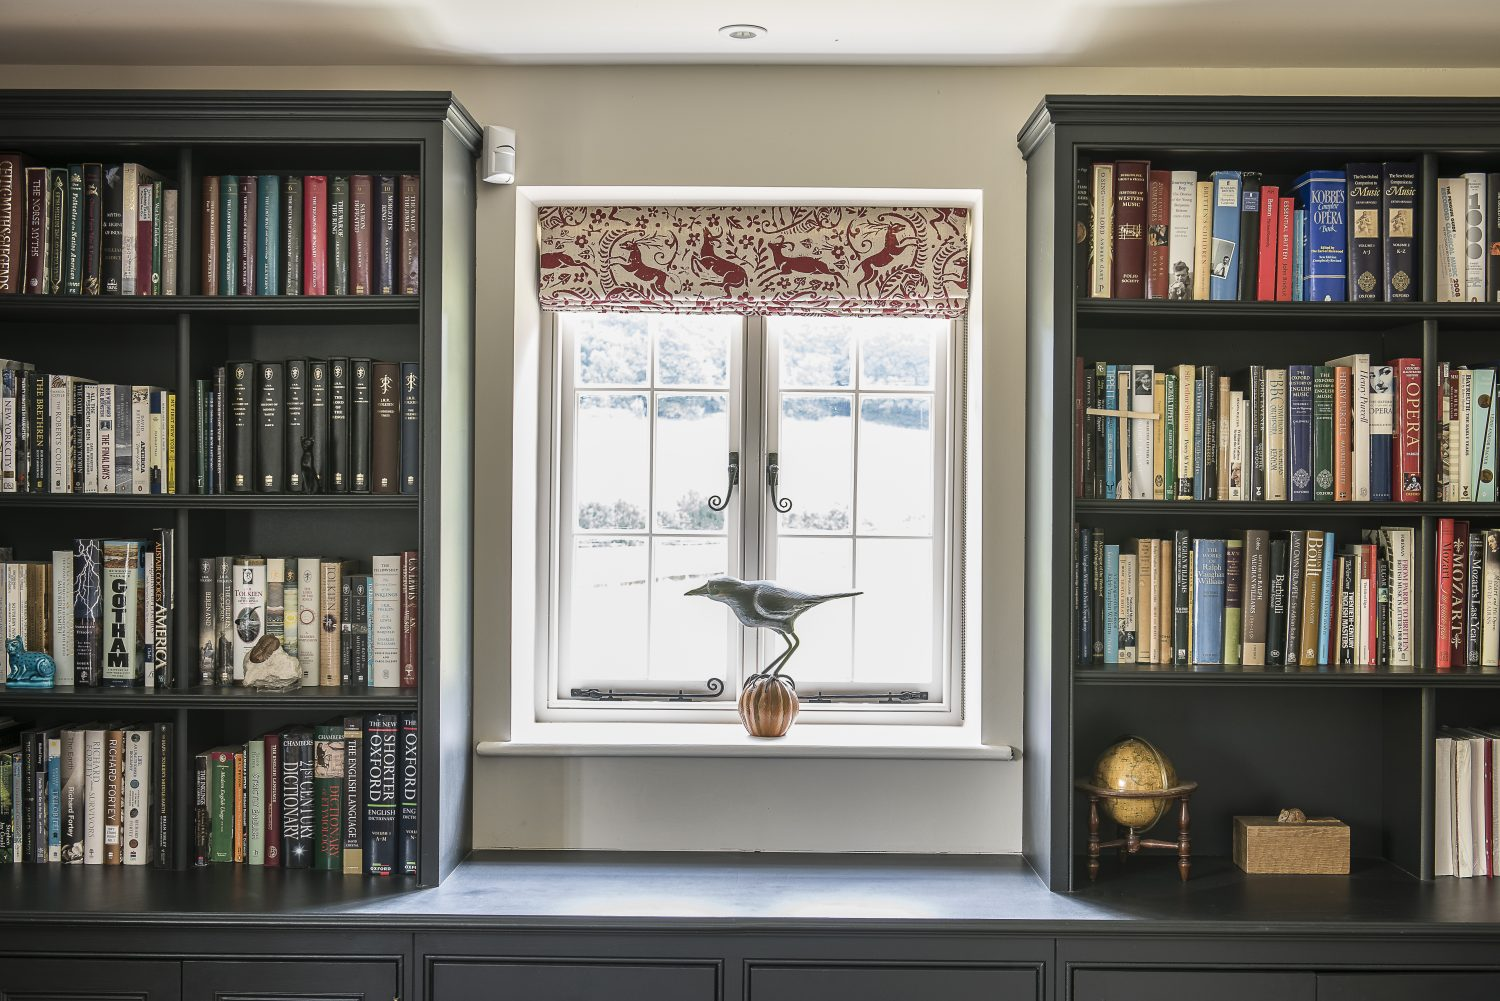 The book-lined study leads into the kitchen. The blind fabric was designed by Lindsay Alker